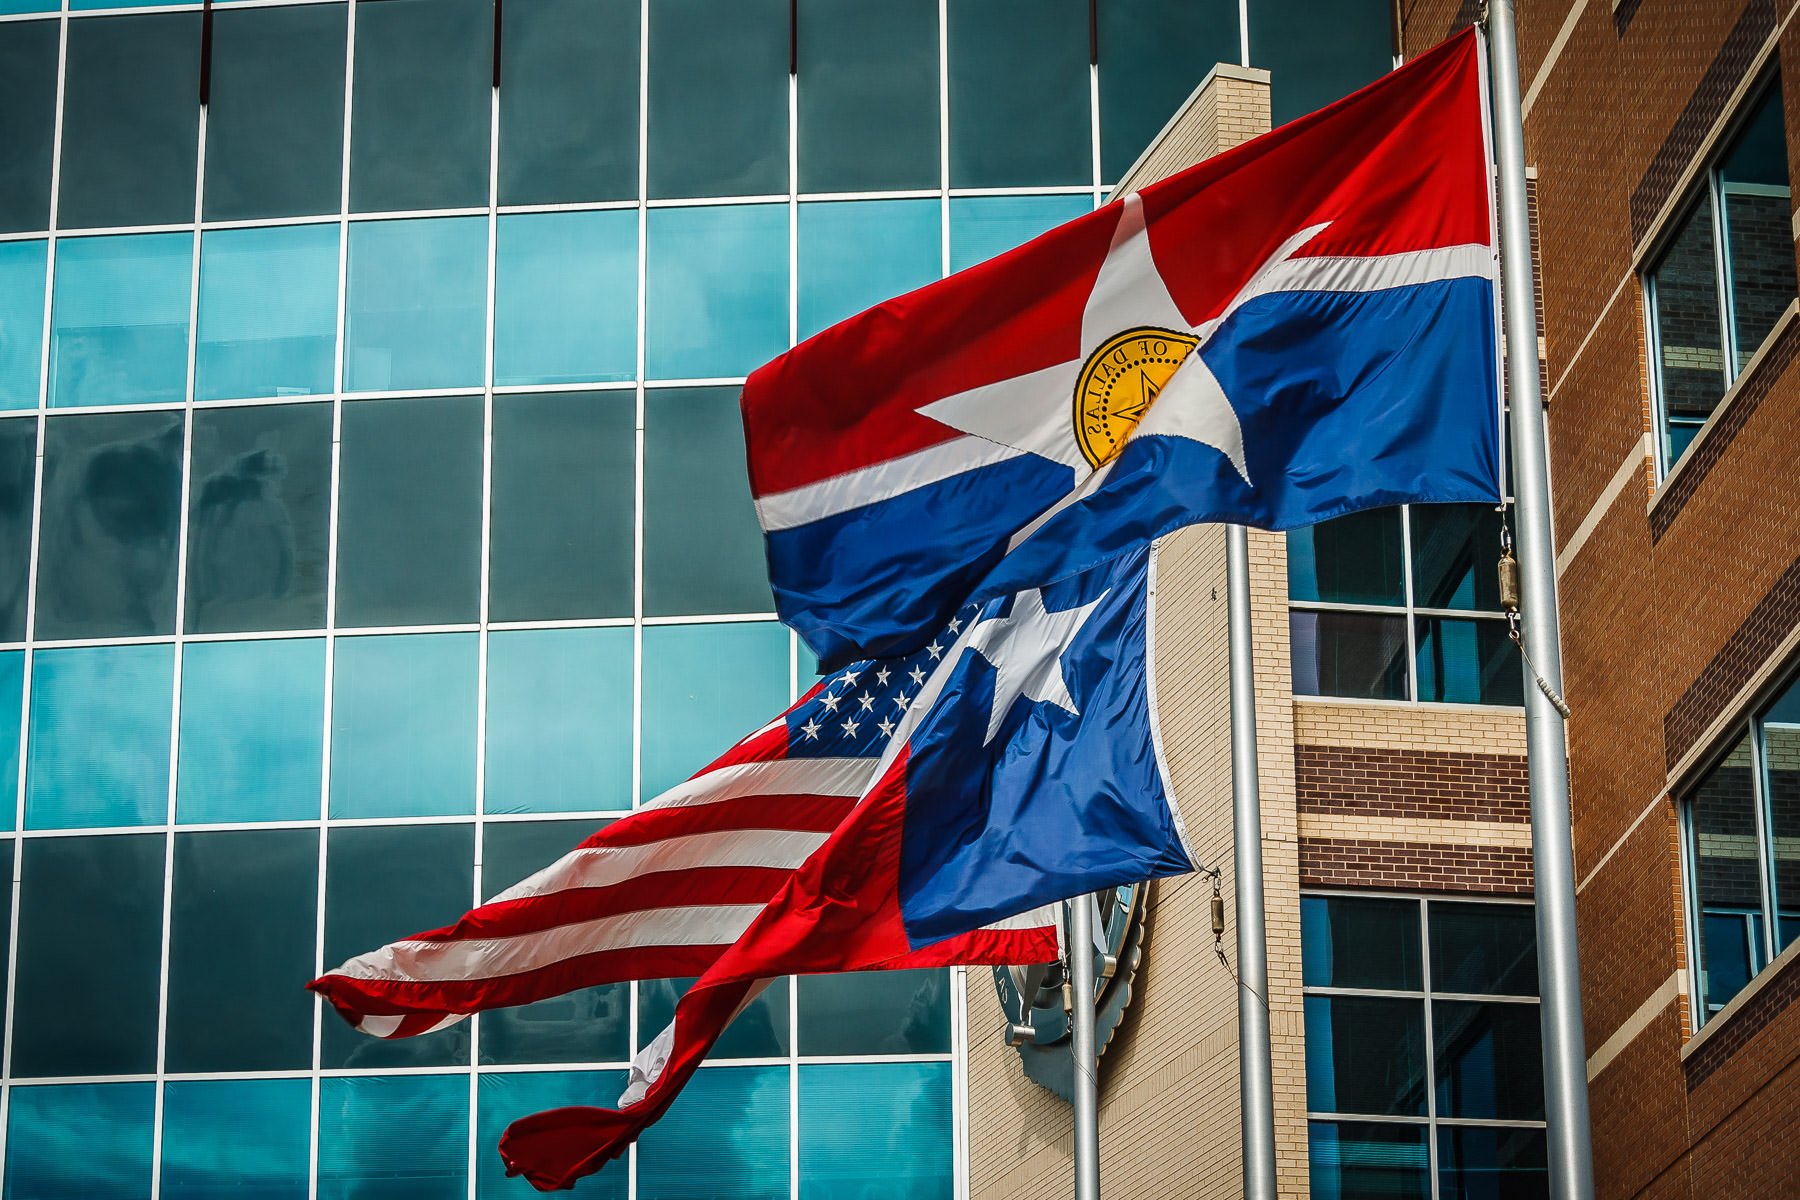 The flags of the City of Dallas, Texas and the United States wave in the wind outside of the Dallas Police Department Headquarters in The Cedars.